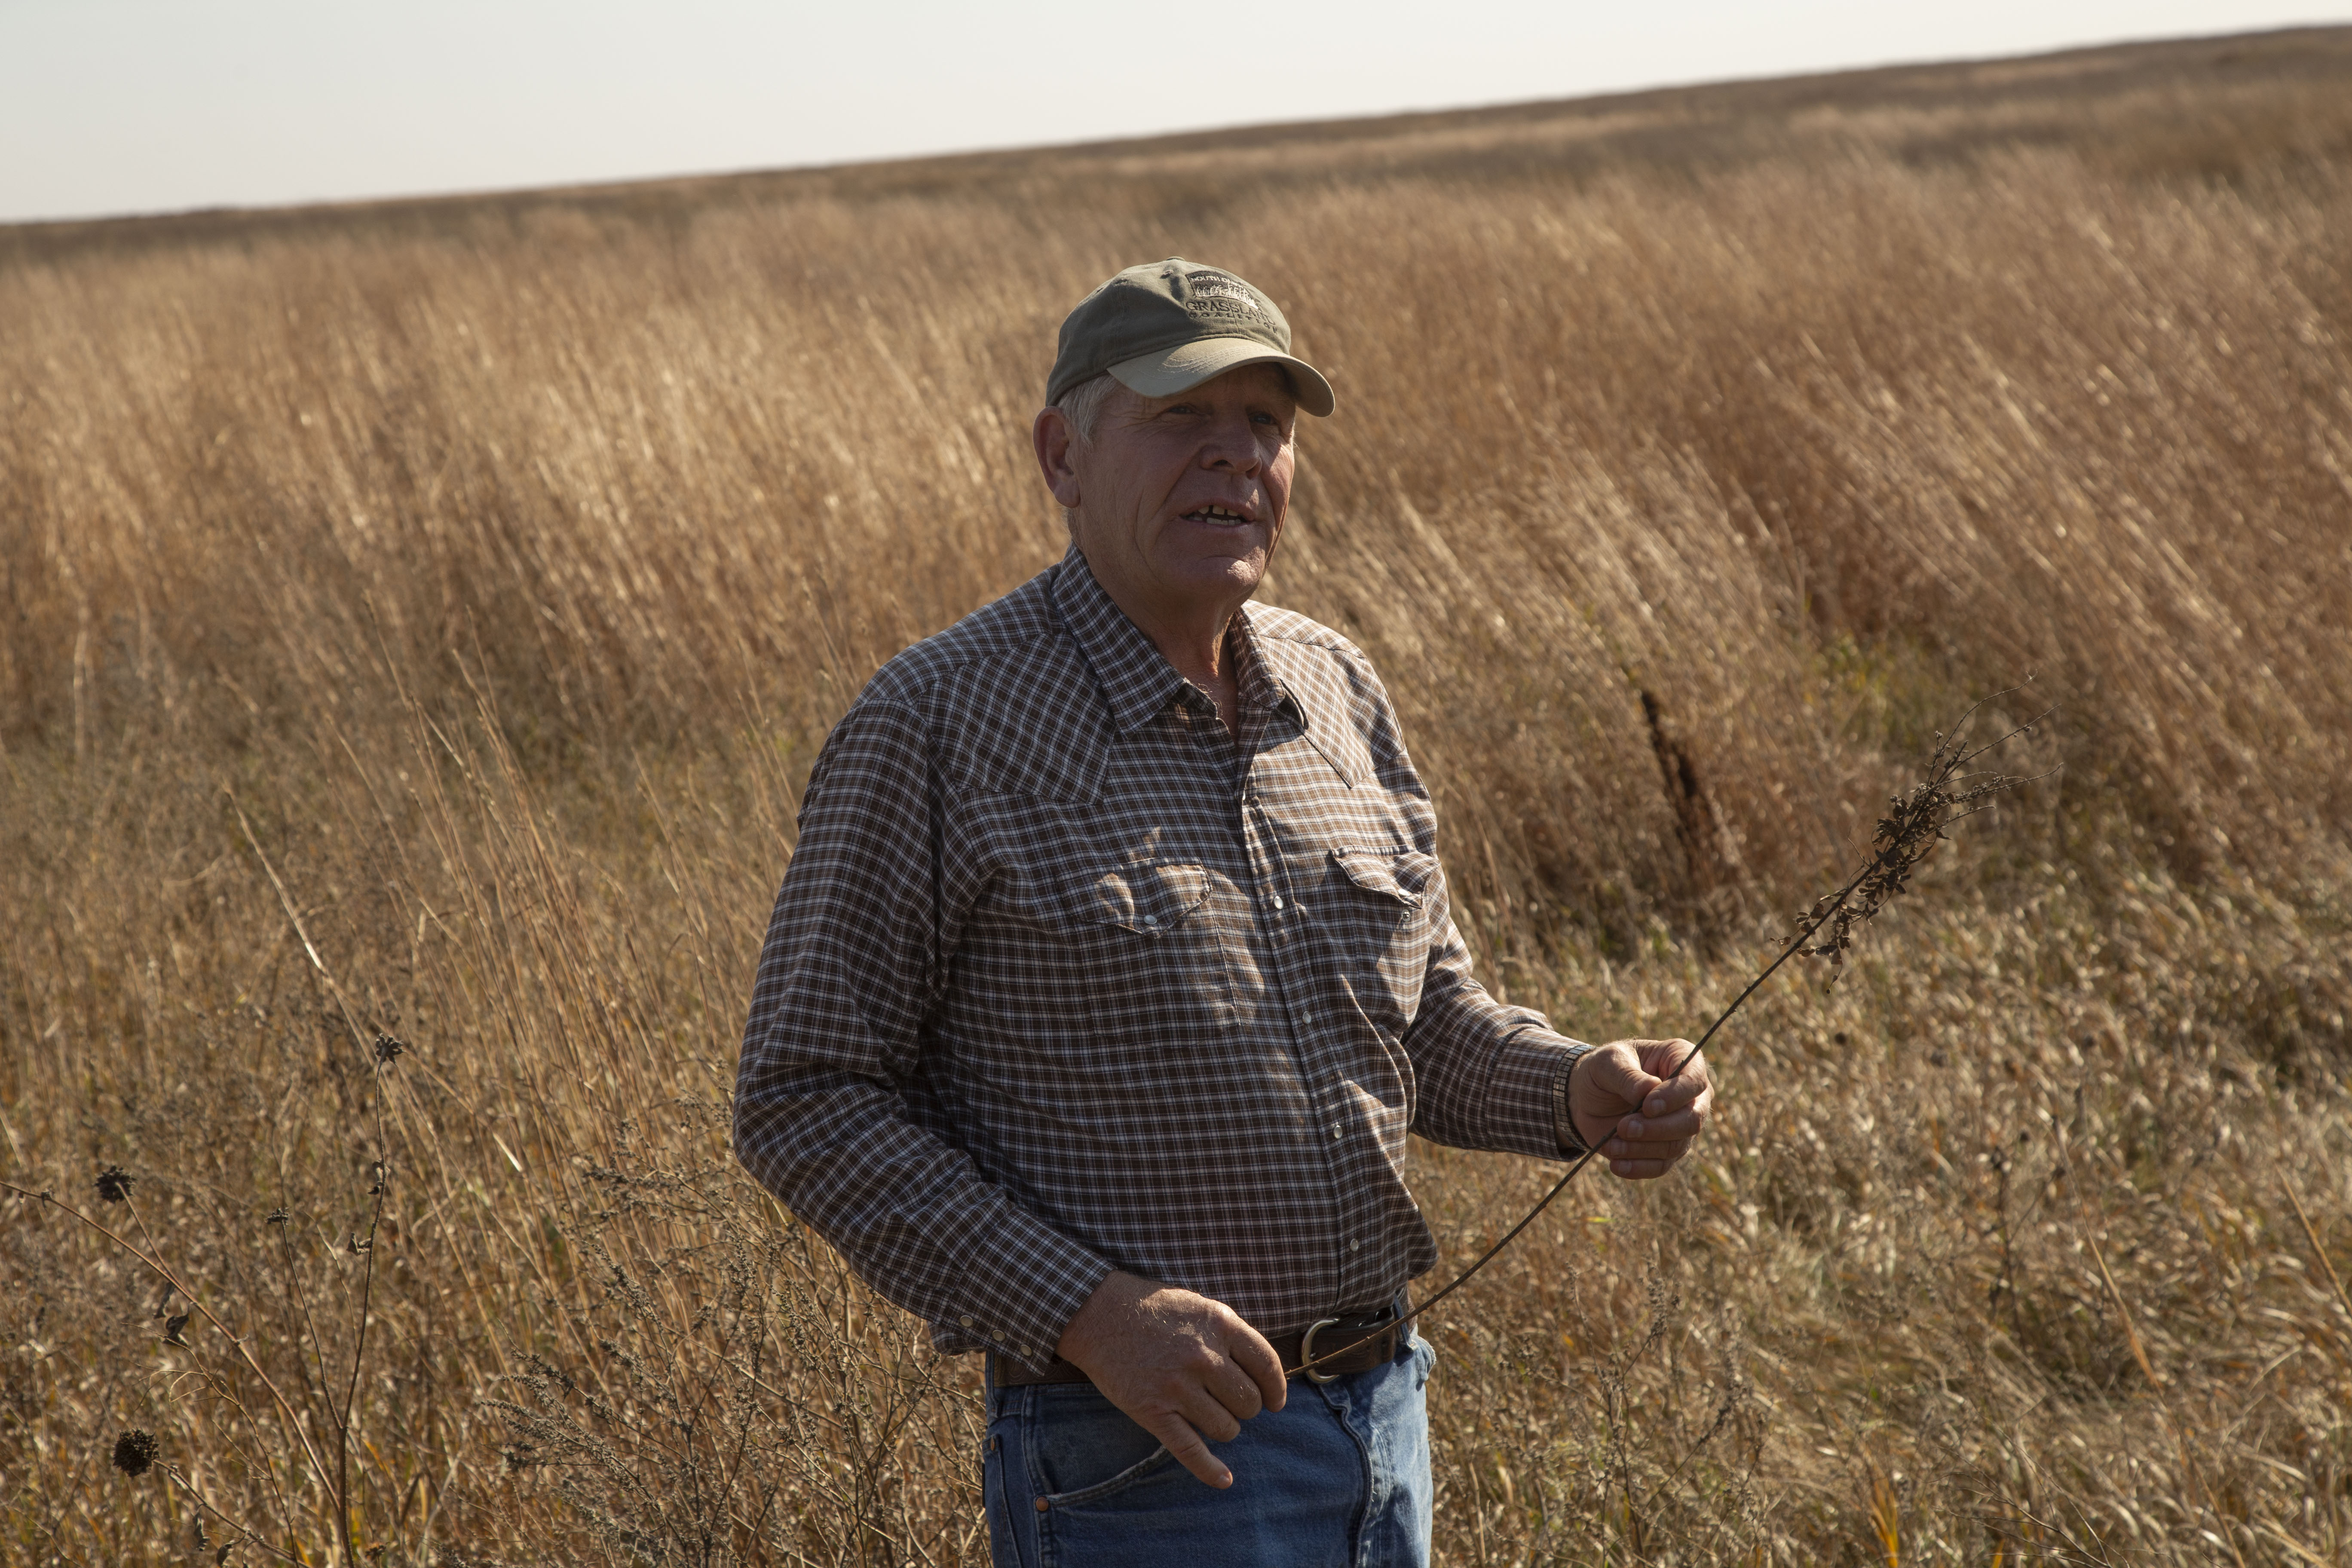 Earth Team mentor Jim Faustich gives an educational tour of his operation in Highmore, SD.